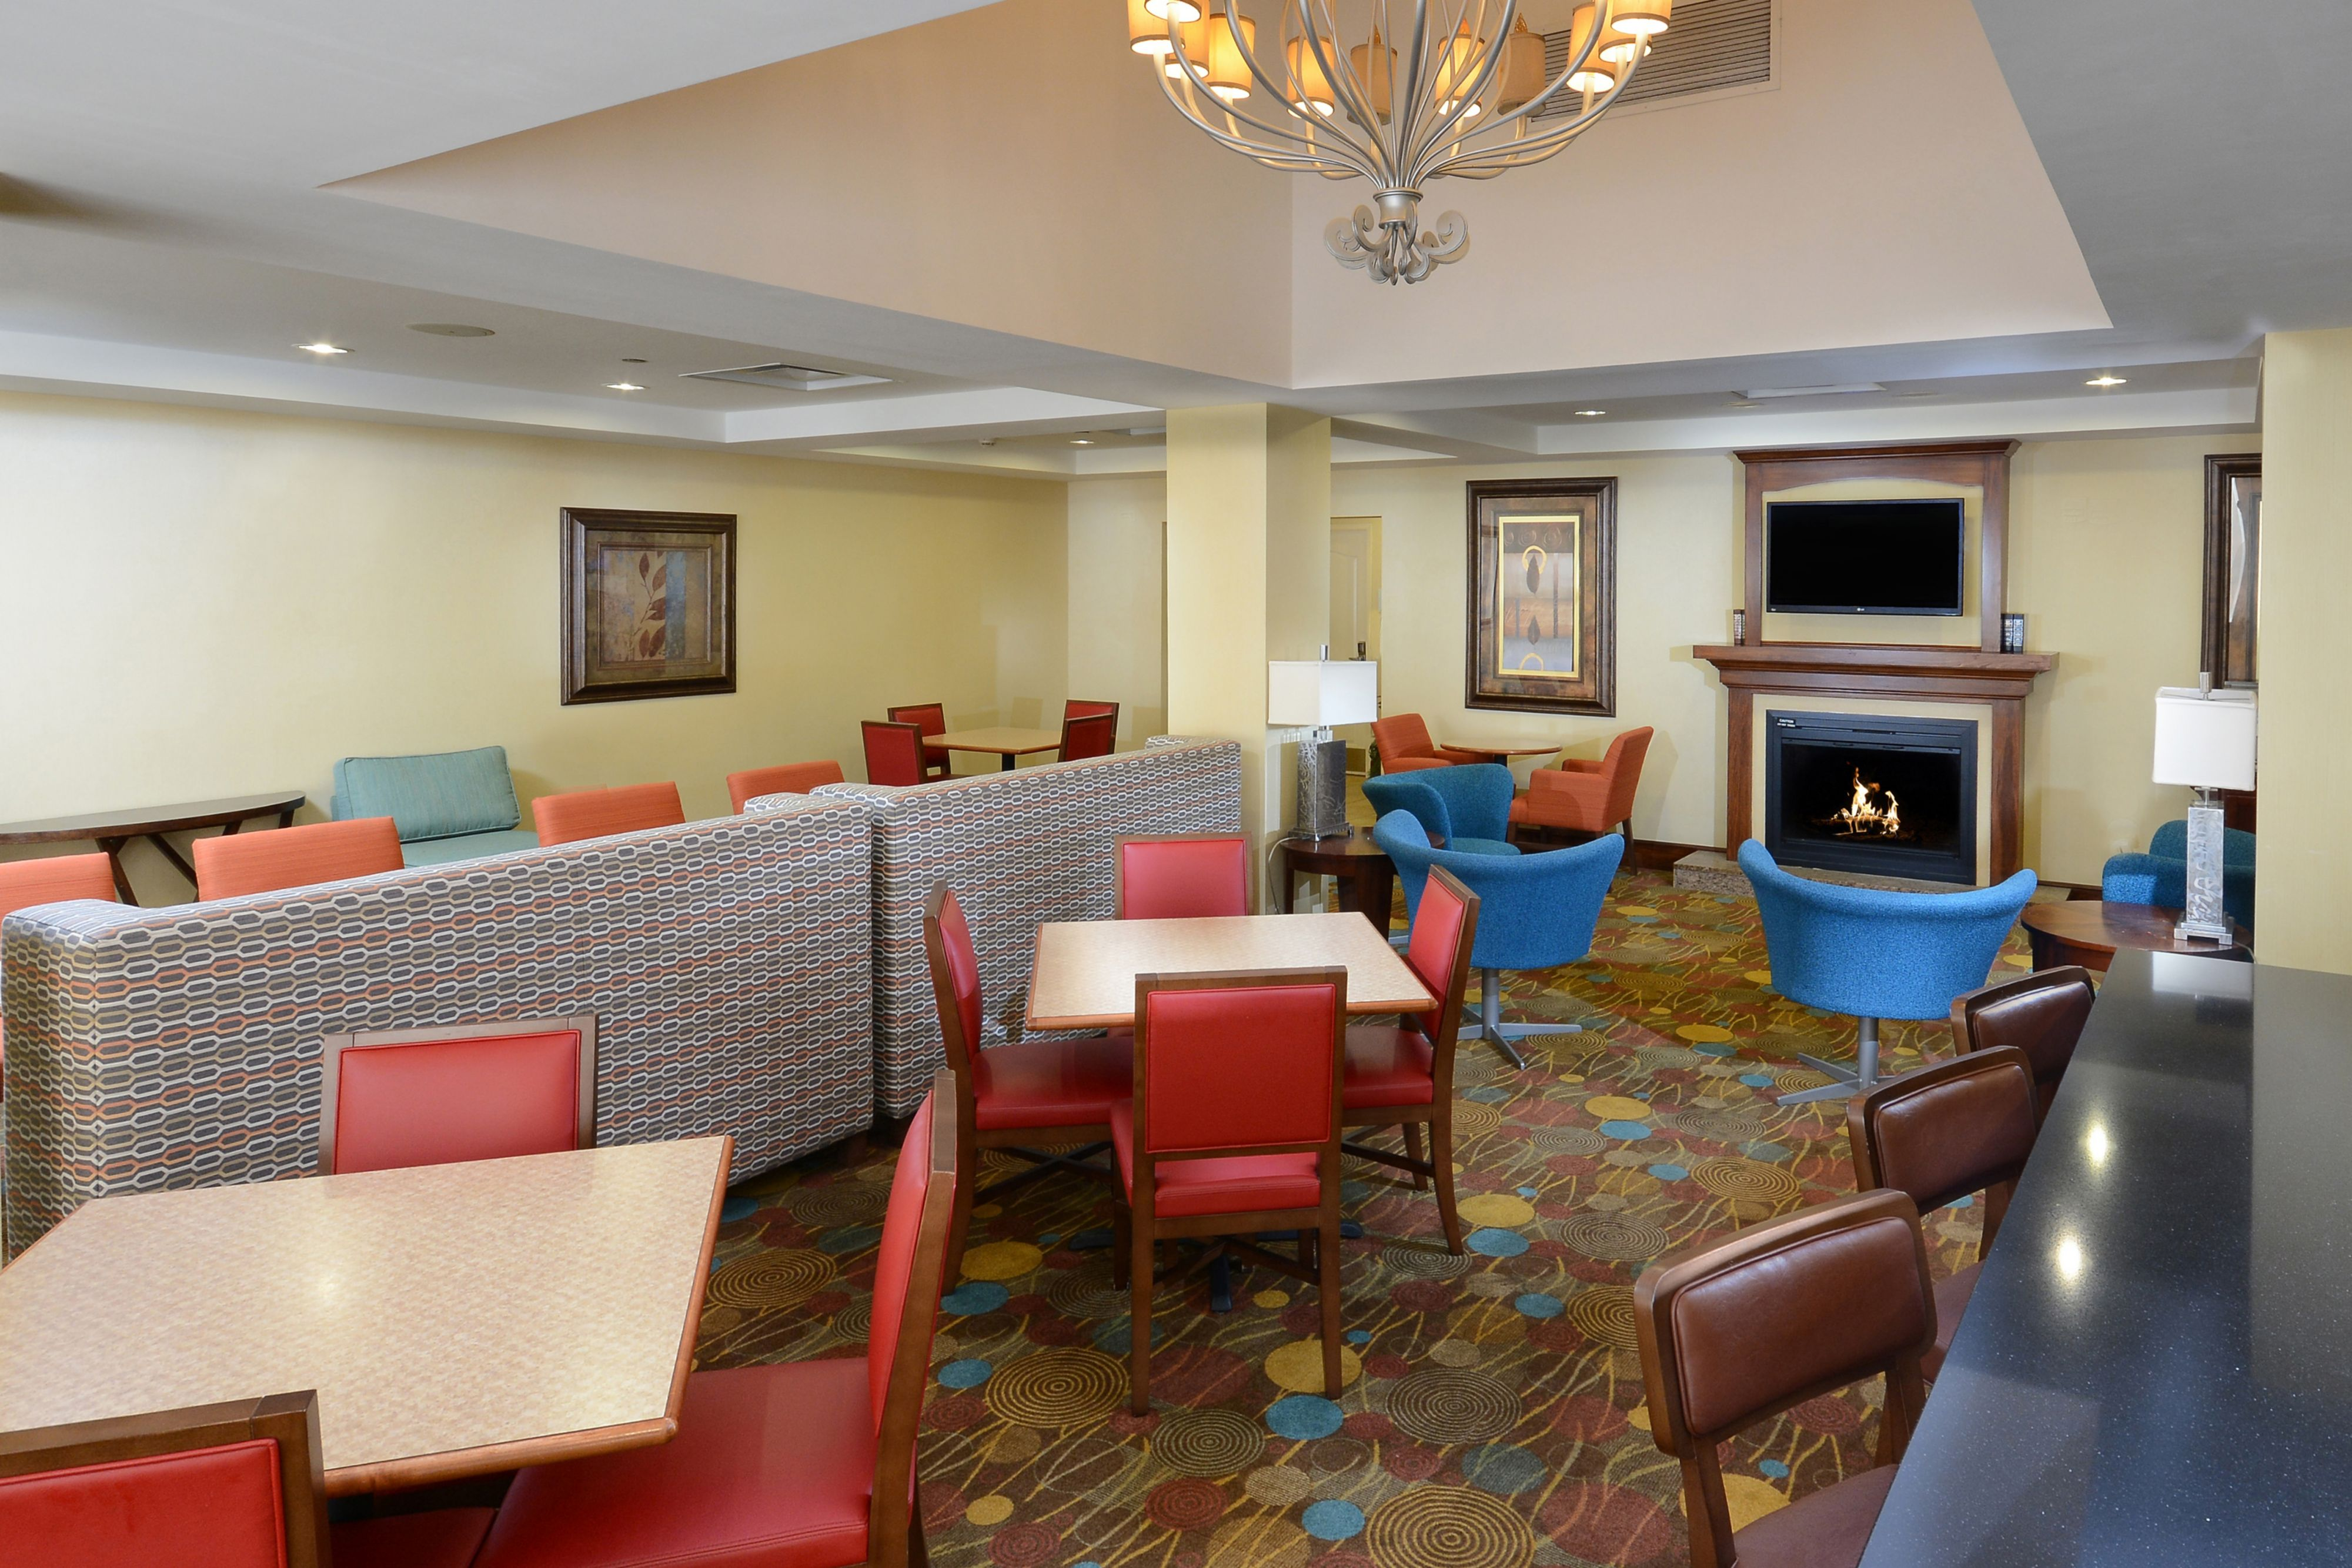 Holiday Inn Express & Suites Greensboro - Airport Area image 5